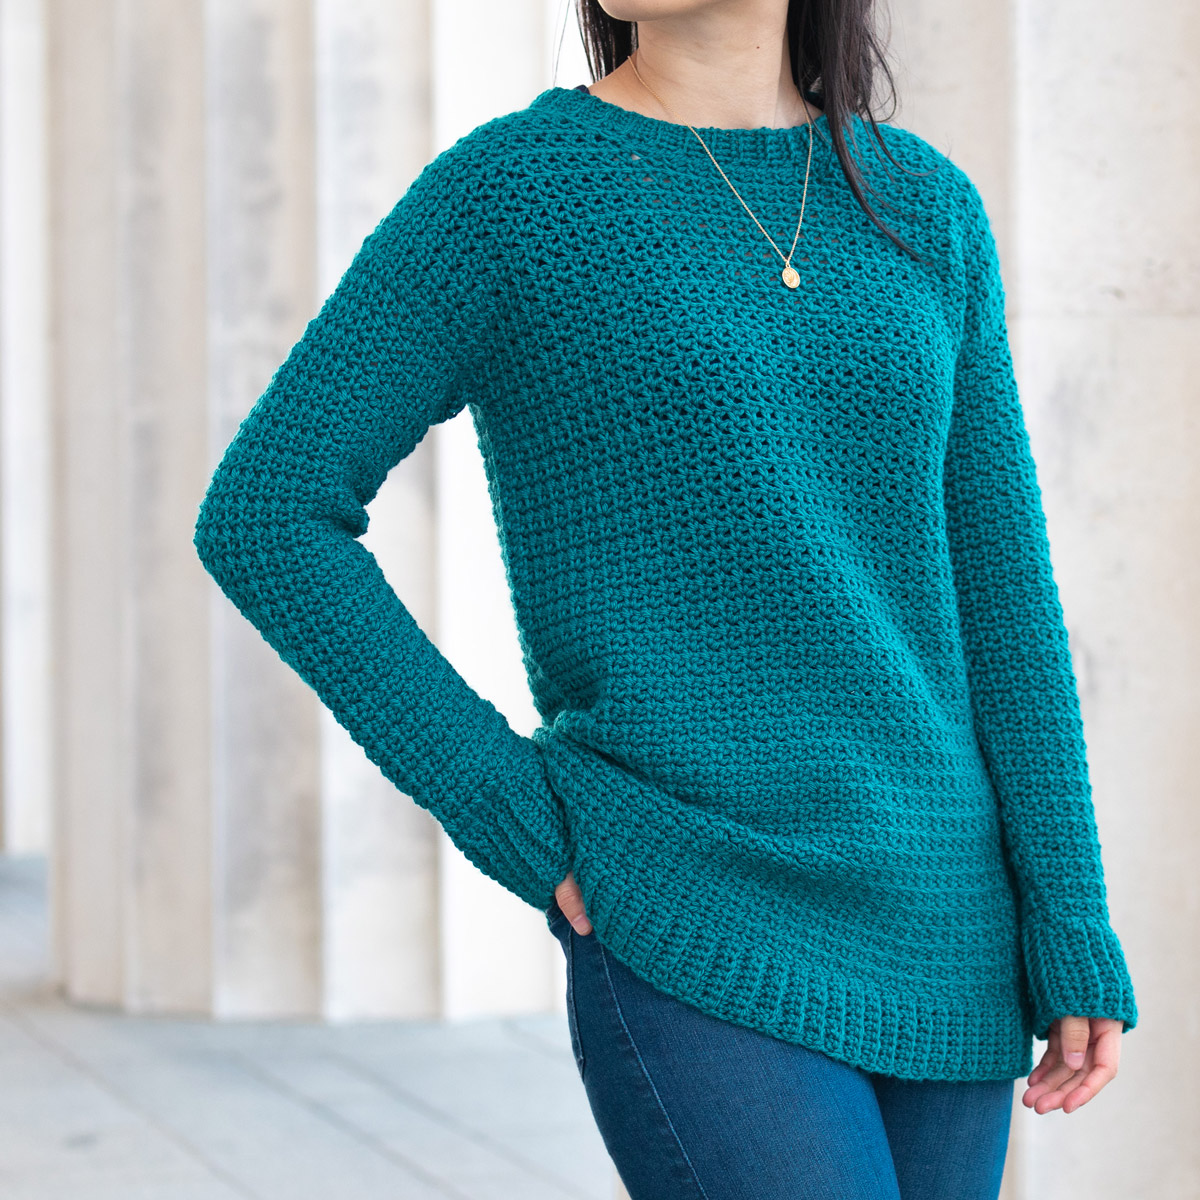 Simple Textured Crochet Sweater Free Pattern Video For The Frills